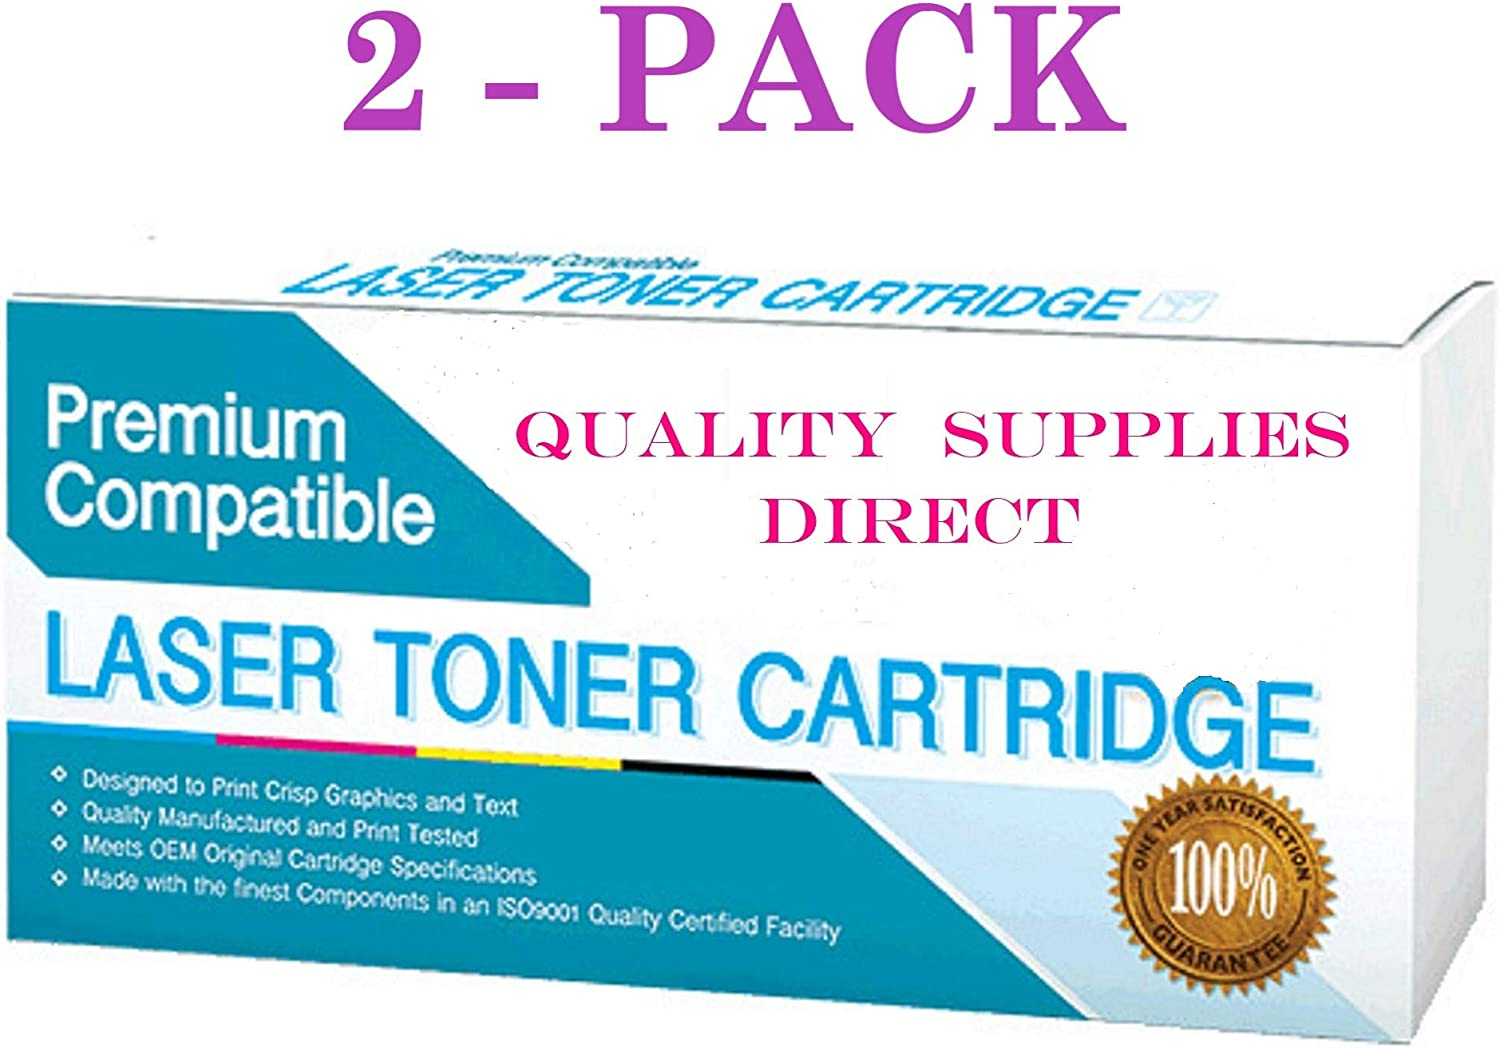 B07T78VCBH QSD Compatible Toner Replacement for Ricoh 841452, Works with: Aficio MP C4501, MP C5501 (Black)(Free 1 to 2 Day DELIVERY)(2-Pack) 71MZsvnB4AL.SL1500_